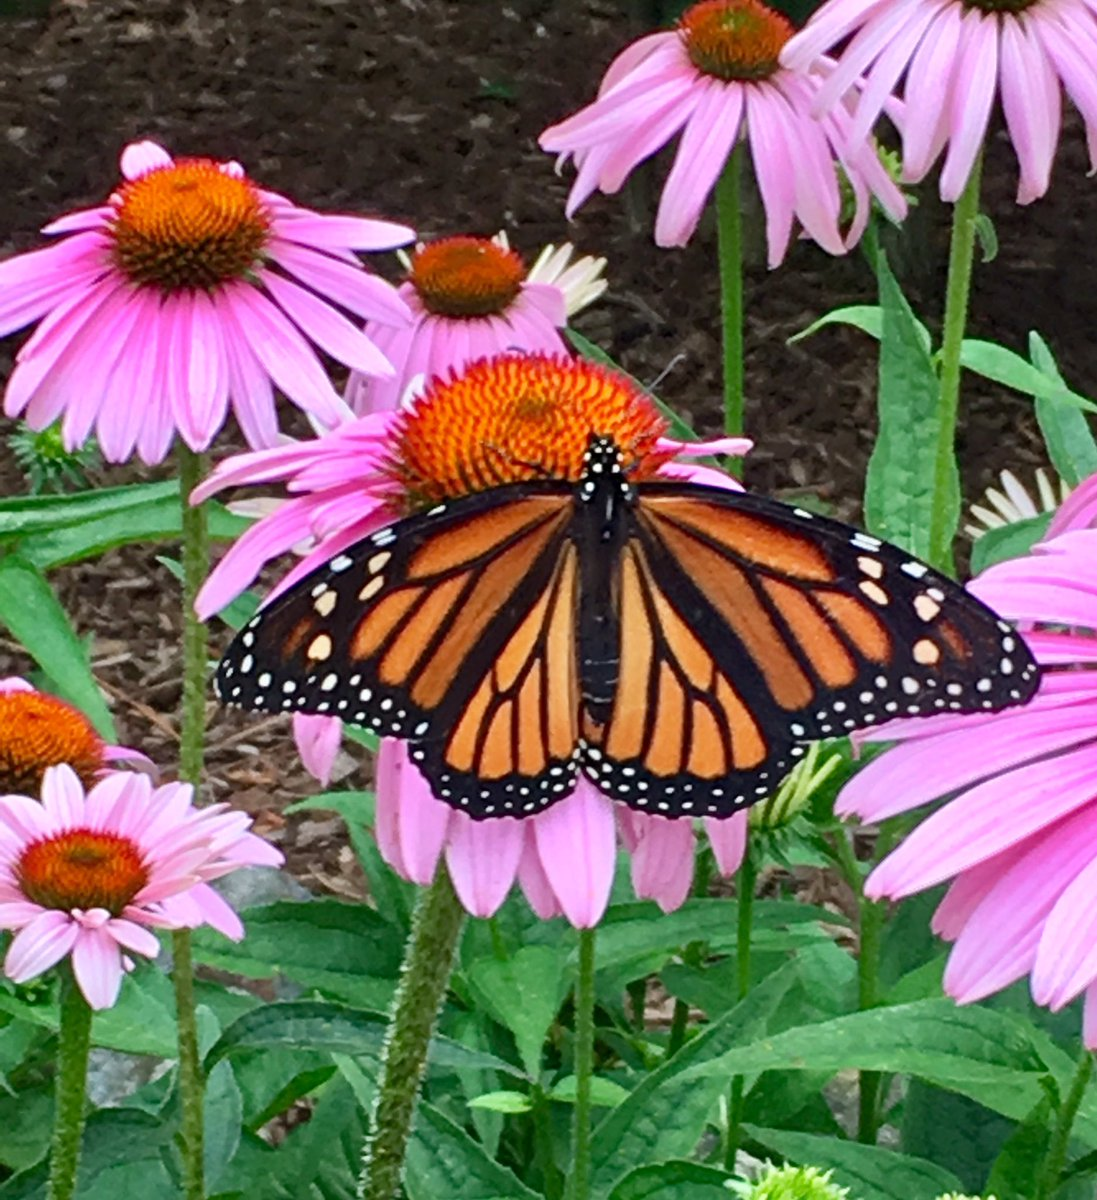 1st Monarch sighting! Hope she finds the native milkweed in the backyard #gardenchat #monarch #butterfly https://t.co/Y035xH05EK